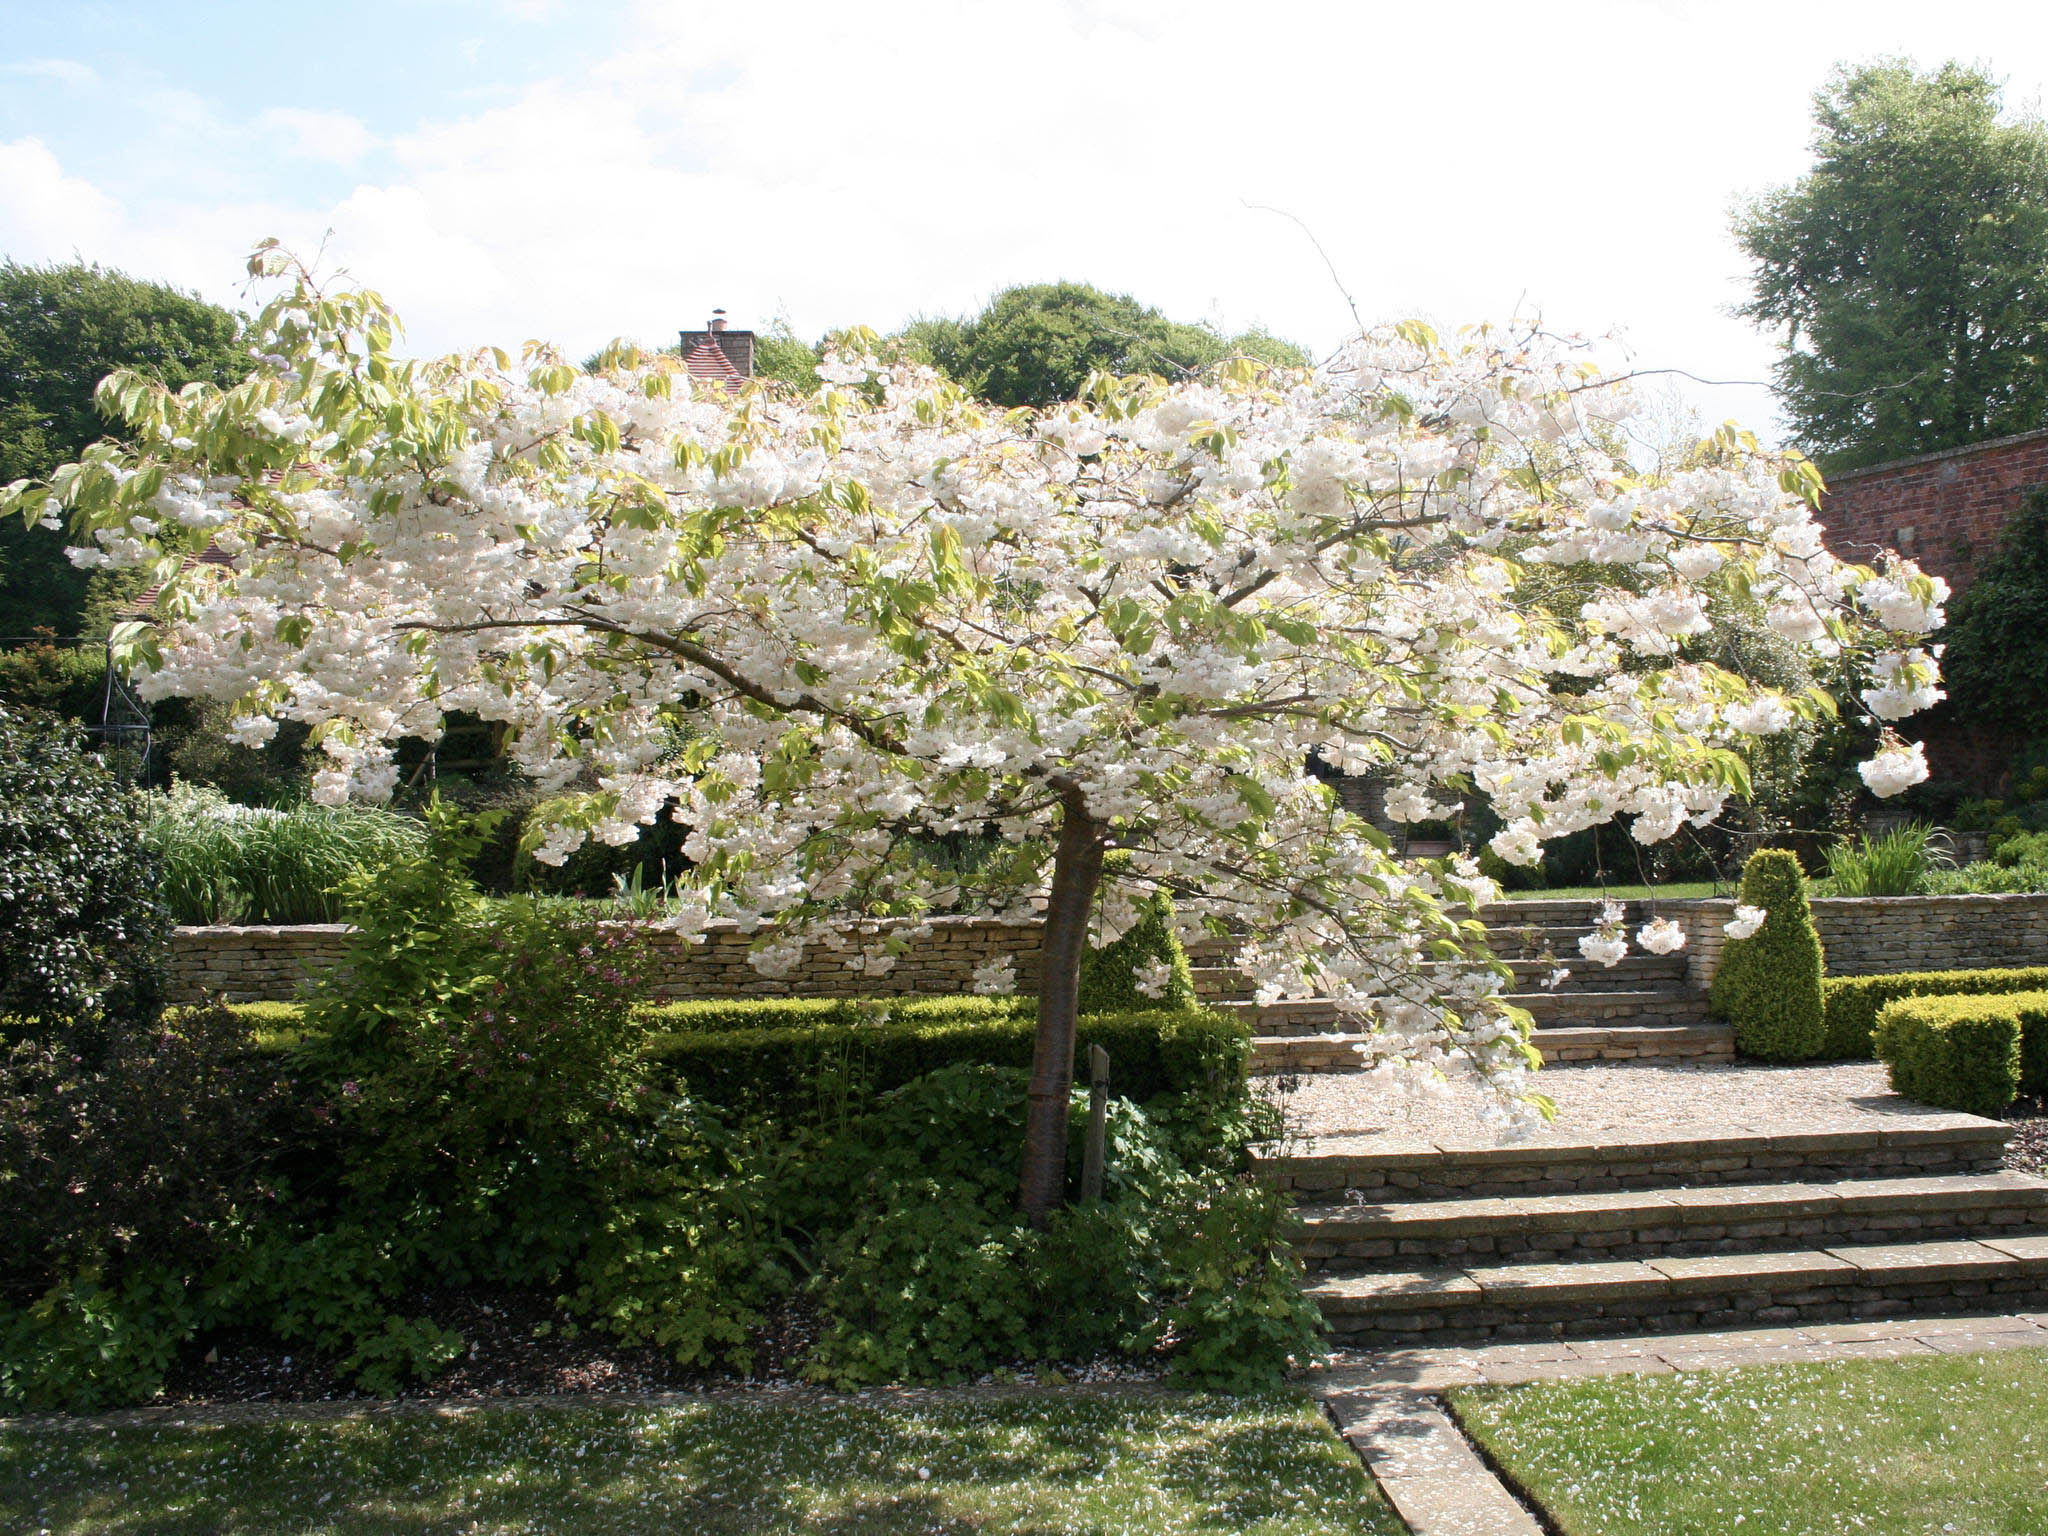 The arching cherry tree Prunus Shogetsu gracing the wide Cotswold Stone steps